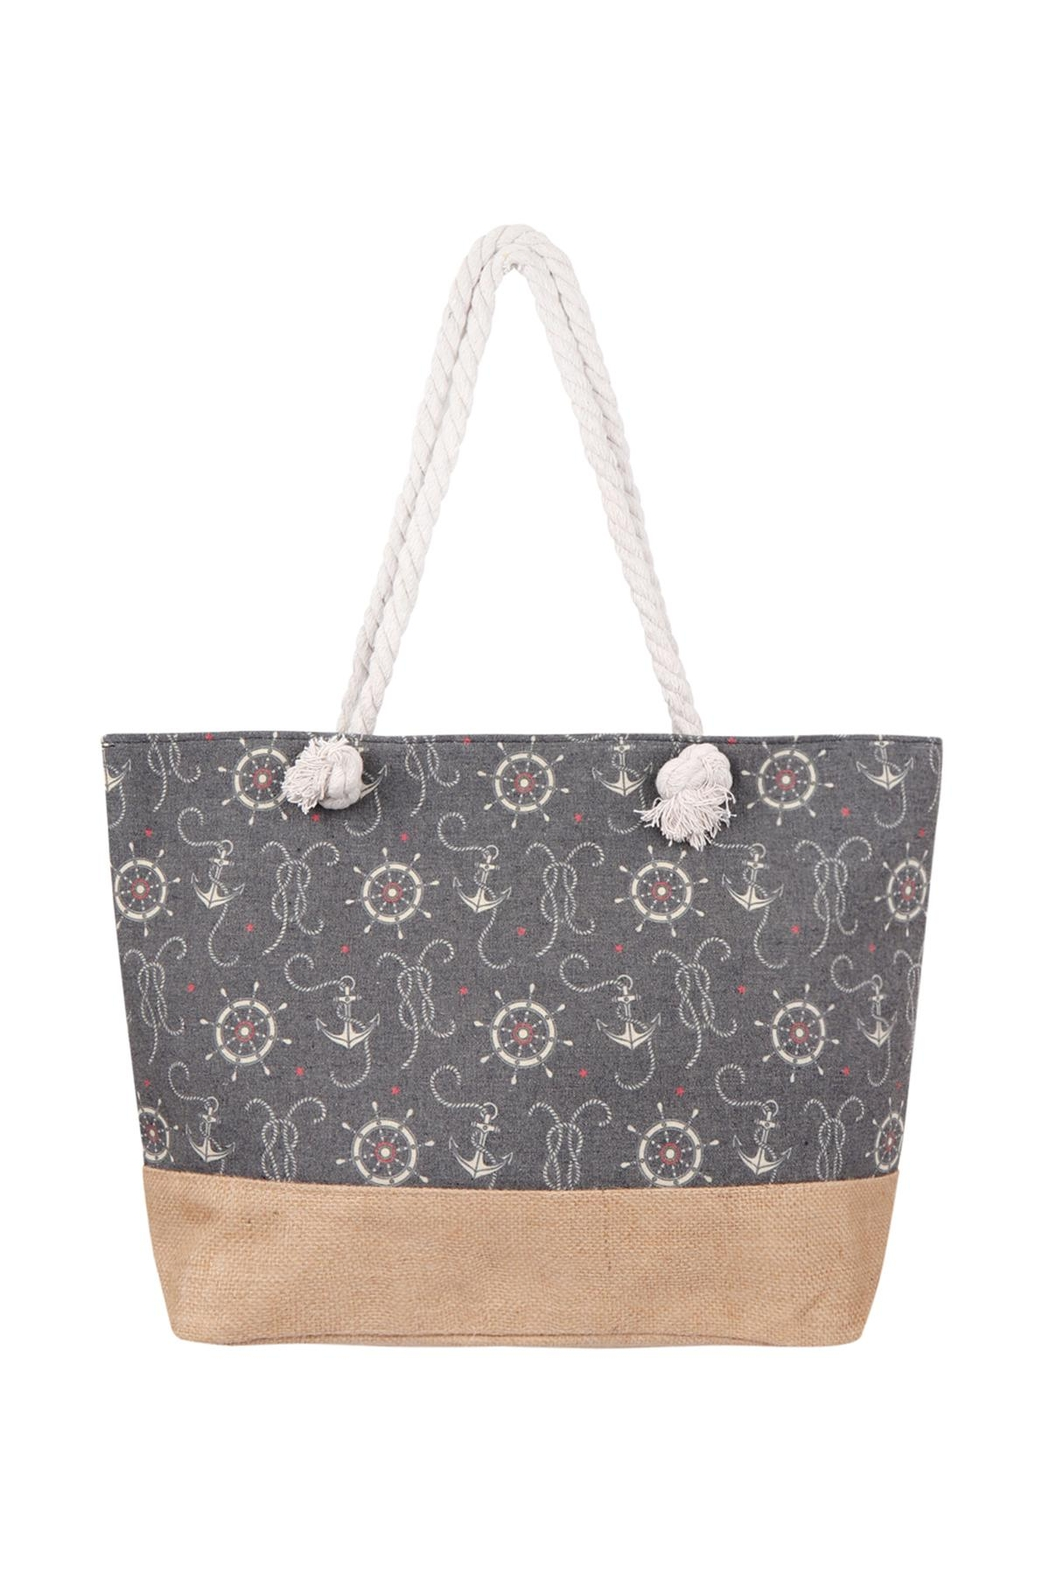 Riah Fashion Anchor Print-Tote Bag - Main Image